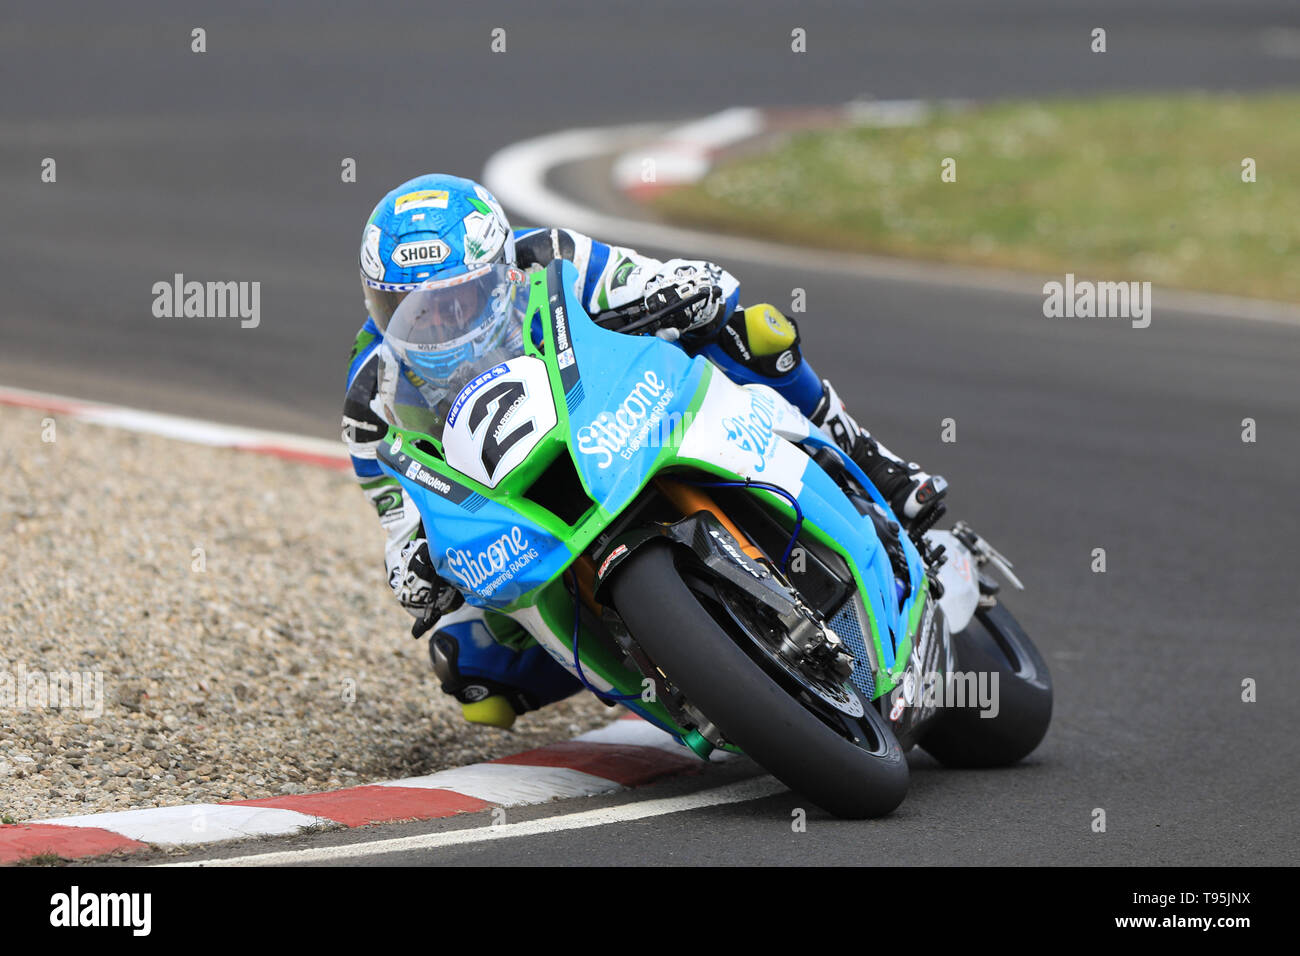 Portrush, Northern Ireland. 16th May, 2019. International North West 200 Motorcycle road racing, Thursday practice and evening racing; Dean Harrison was second fastest on the Silicone Engineering Racing Kawasaki during the SuperBike qualifying session Credit: Action Plus Sports/Alamy Live News - Stock Image